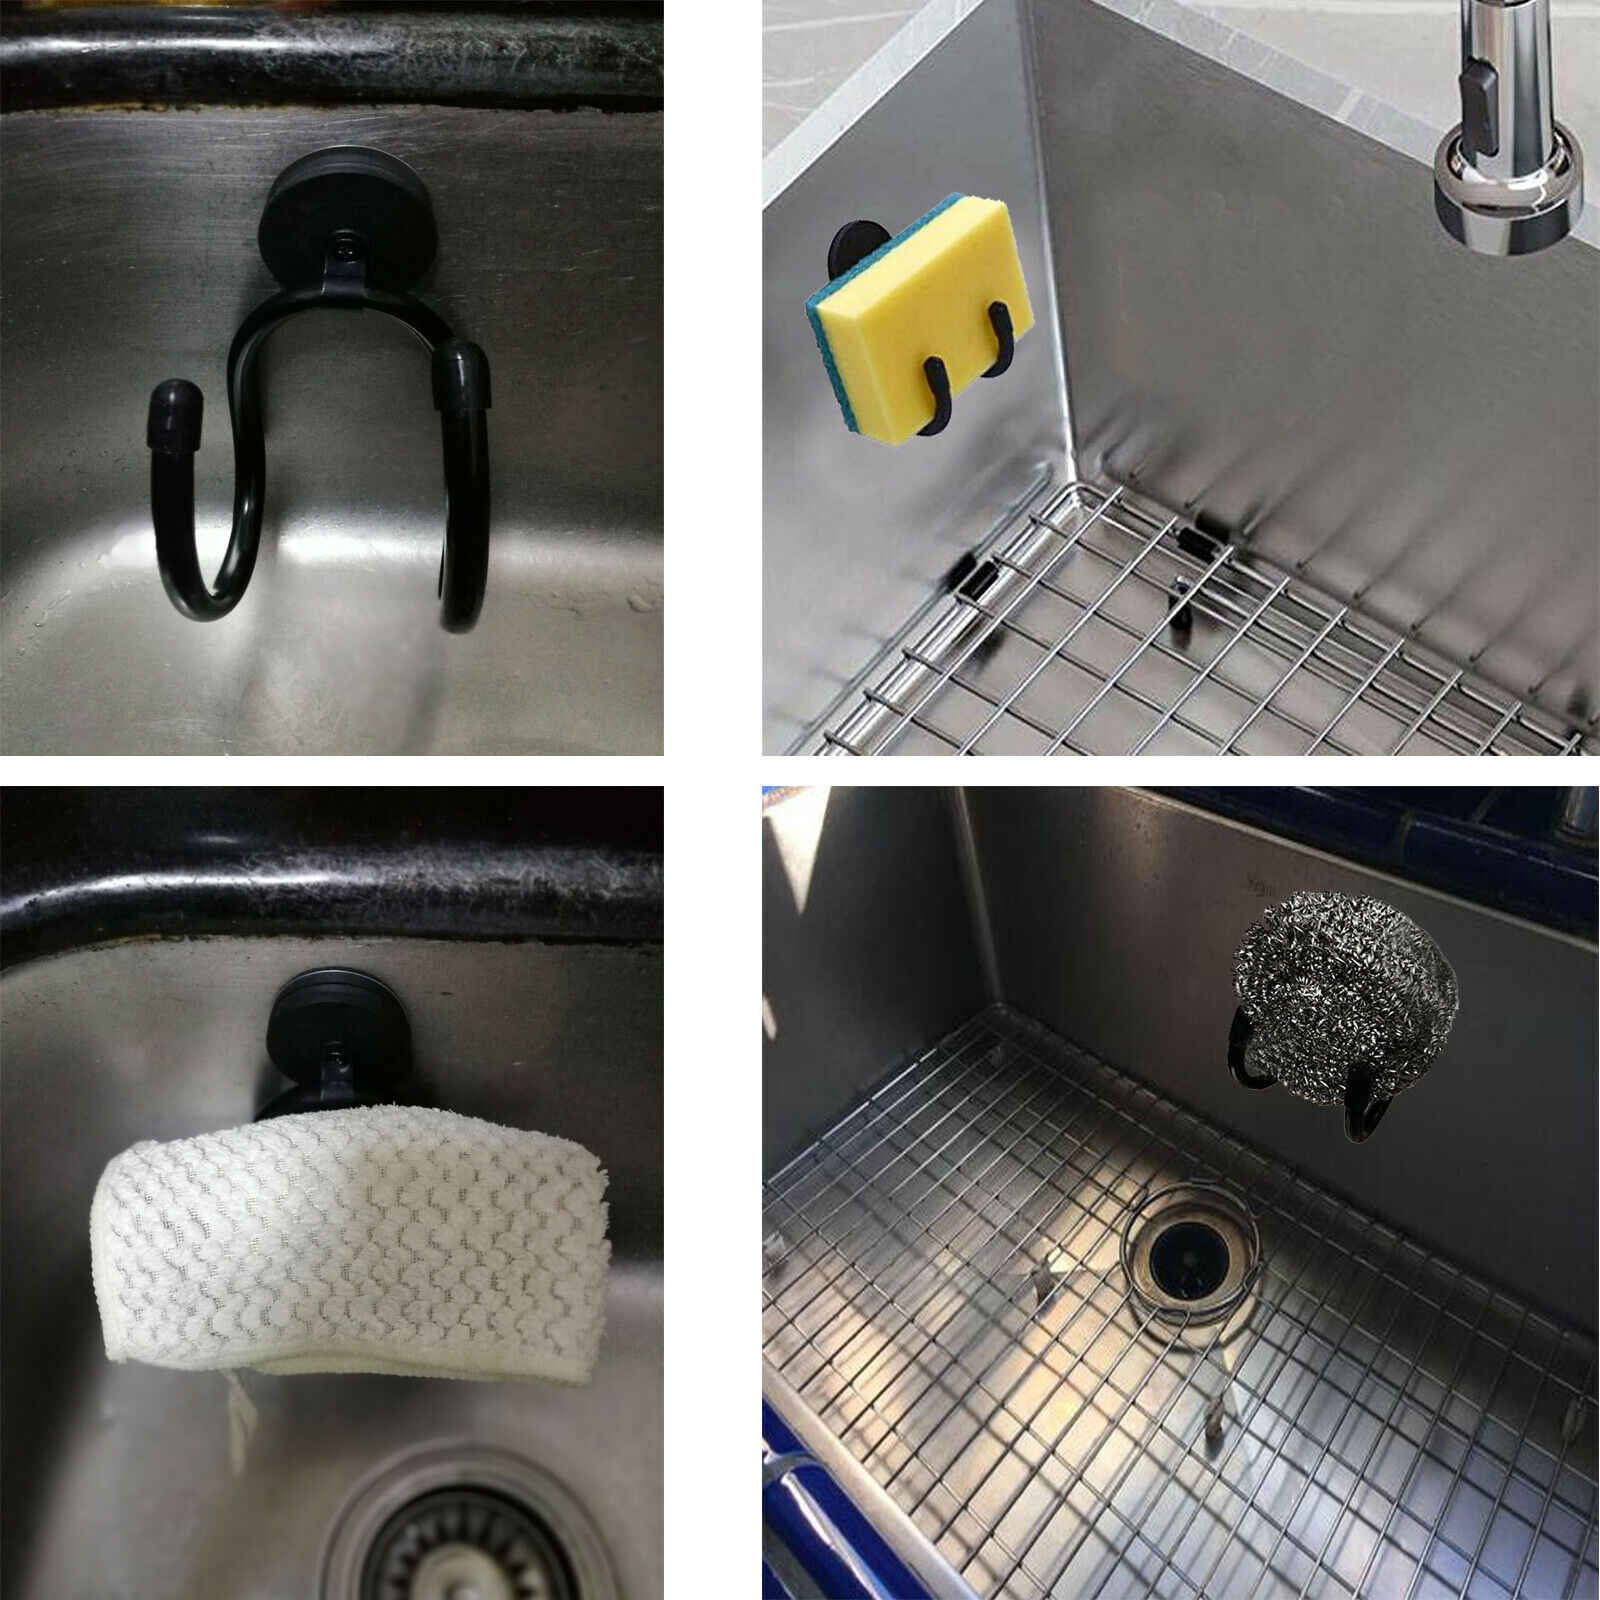 2x Magnetic Dish Cloth Dish Towel Holder for Kitchen Sink w Metal Plate W style